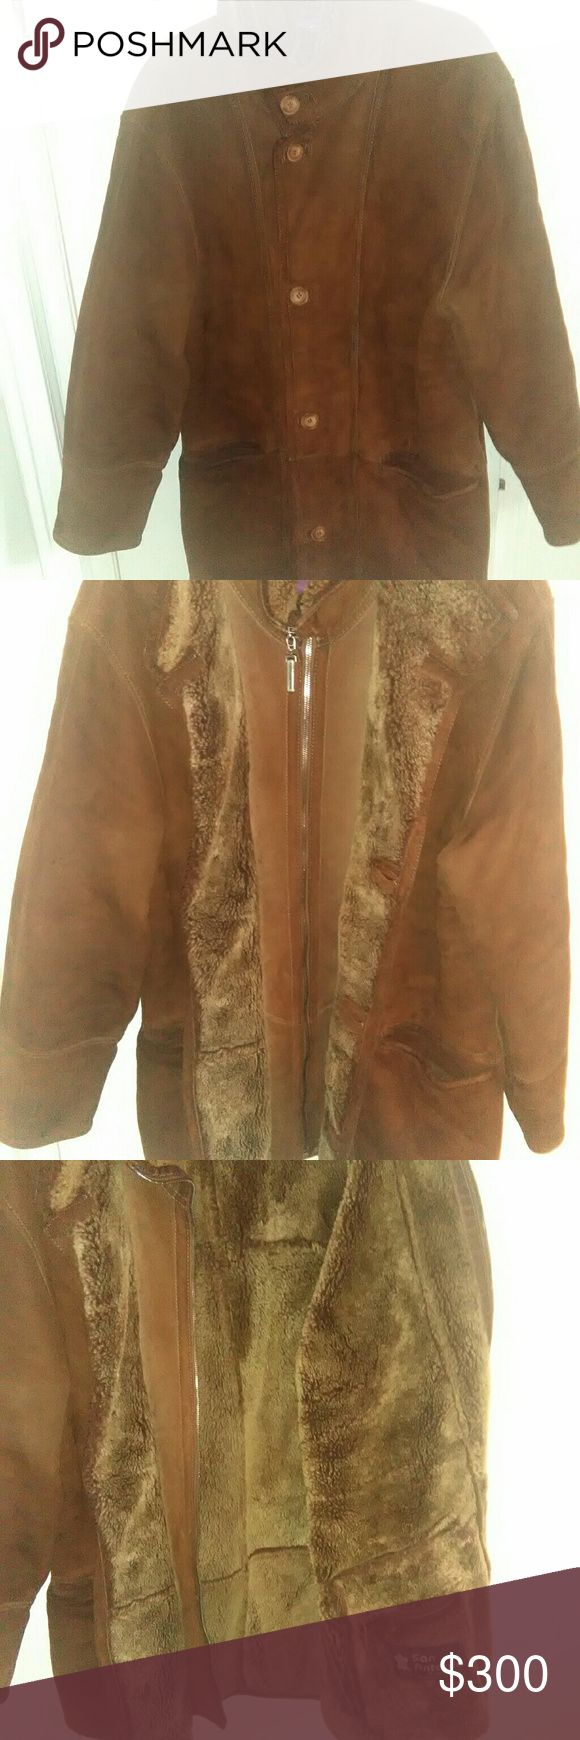 SAN ANTONIO Exclusive Shearling Jacket prep owned. In new condition. Perfect for the weather today. European size 46 SAN ANTONIO Exclusive Jackets & Coats